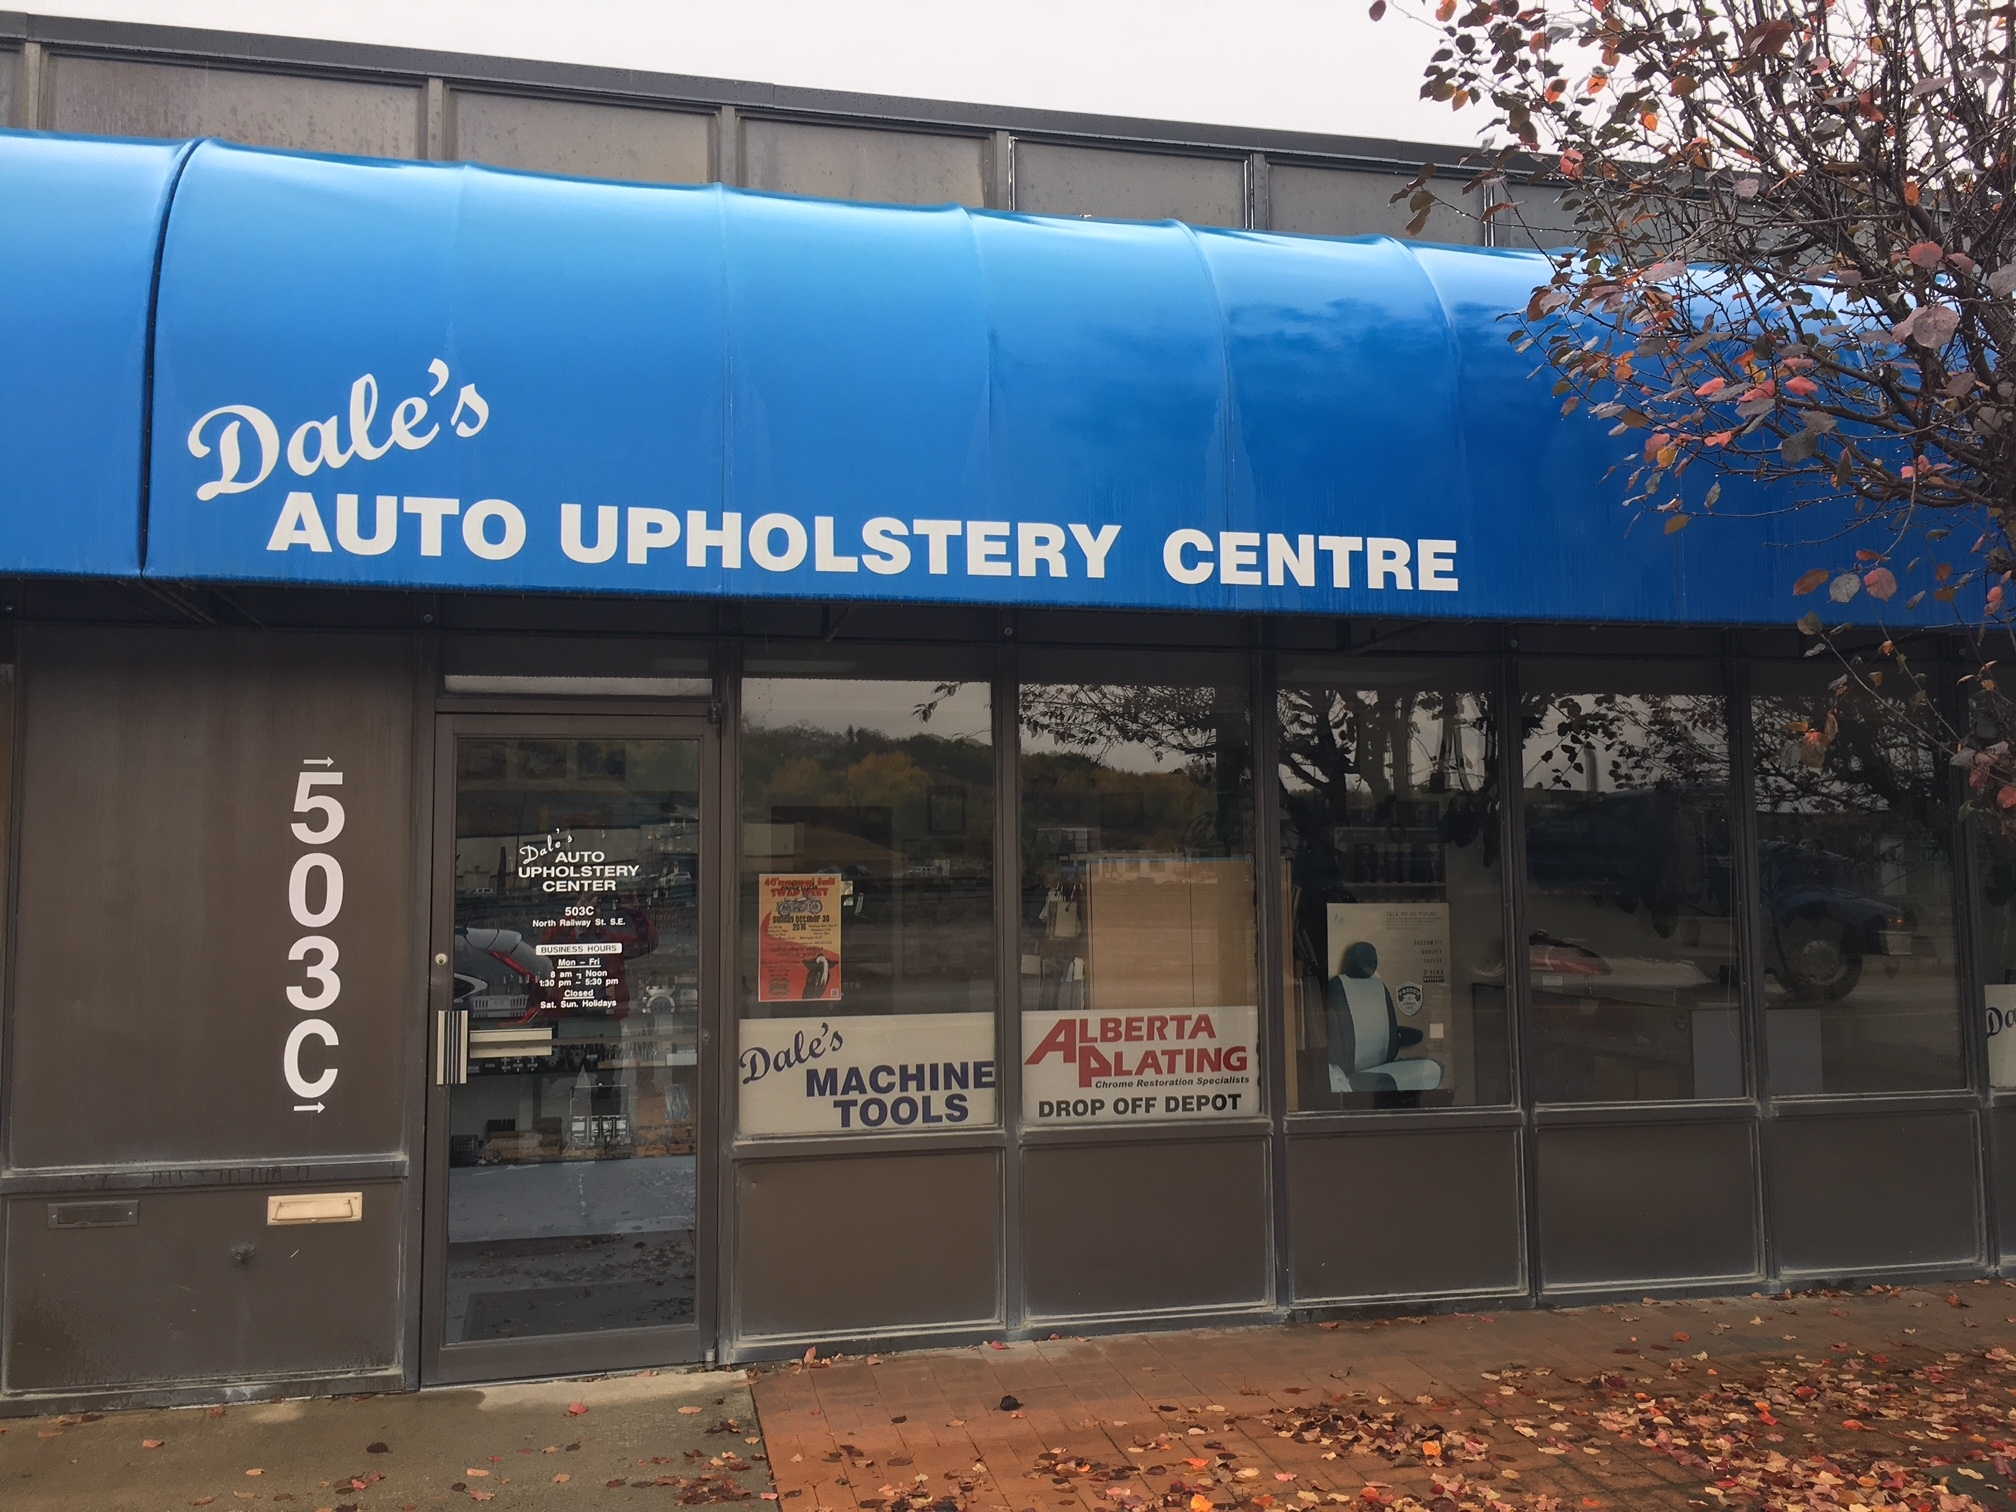 Dale's Auto Upholstery Centre in Medicine Hat: Front of Dale's Auto Upholstery Centre from street